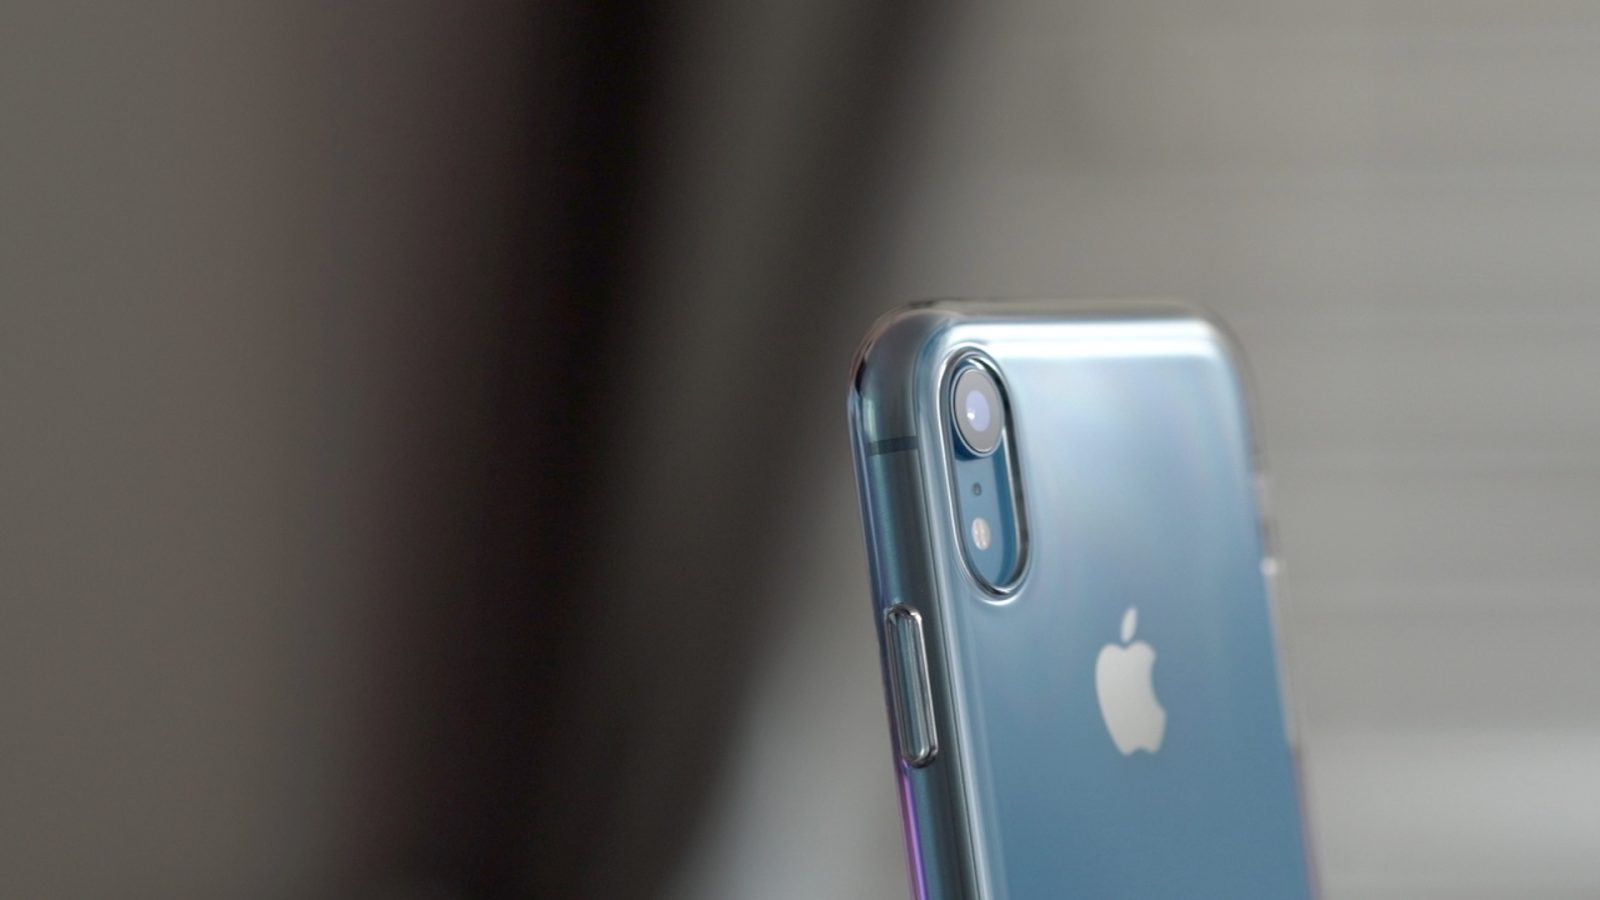 Nomura analyst predicts no physical changes to 2019 iPhones, sales drop expected